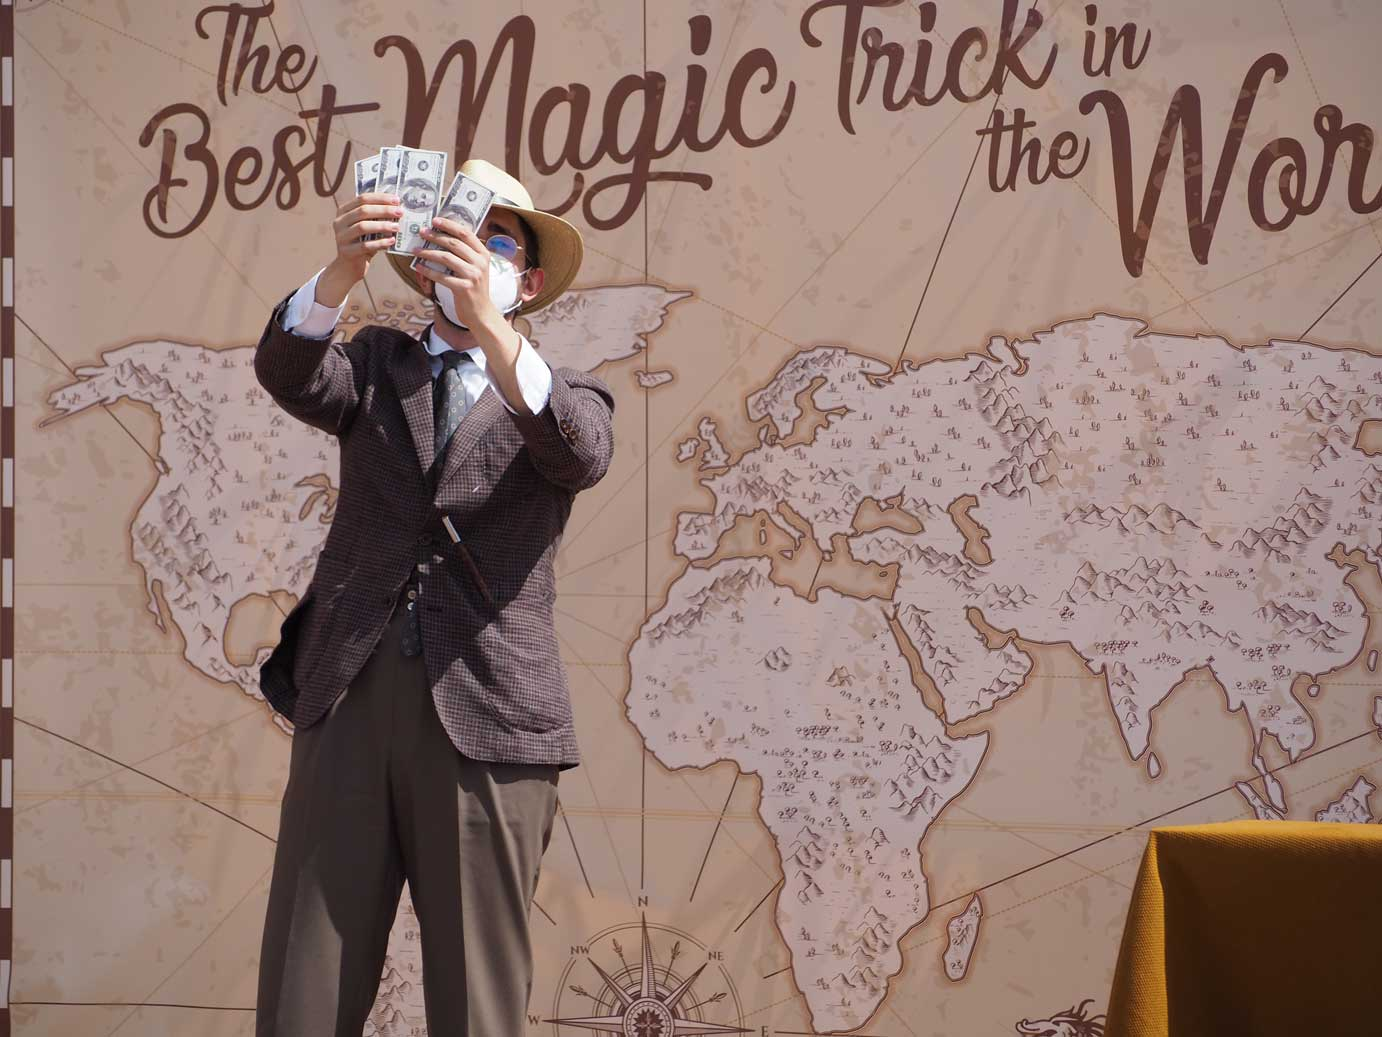 the-best-magic-trick-in-the-world-05